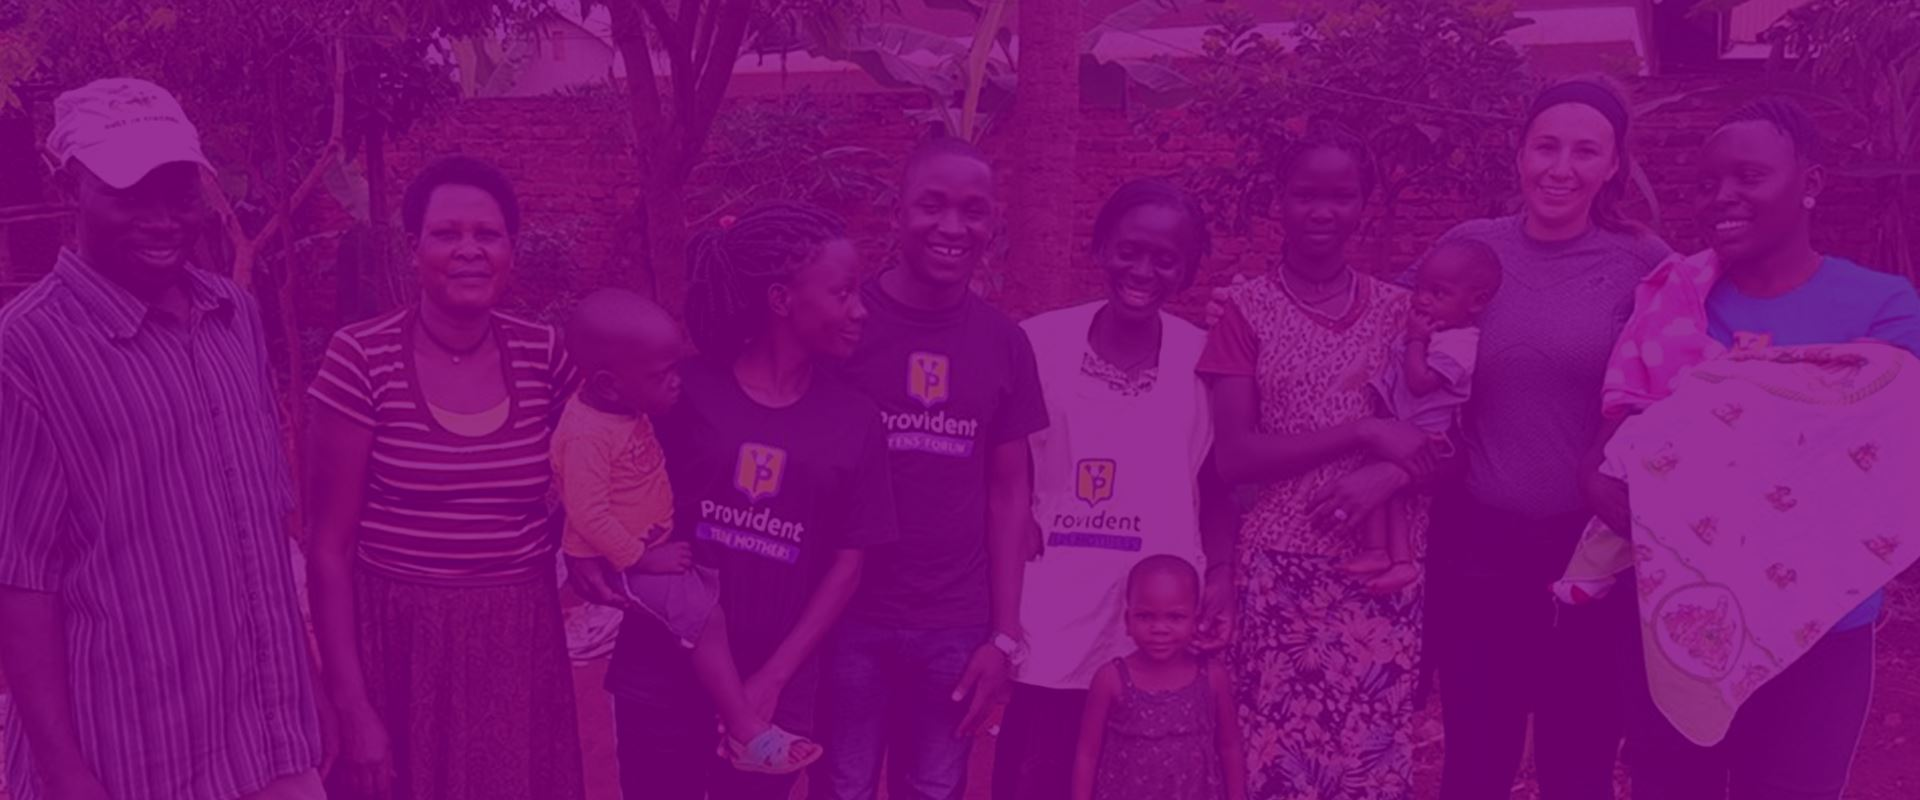 Family Reconciliation, Provident Teen Mothers Uganda, Family Reconciliation Uganda